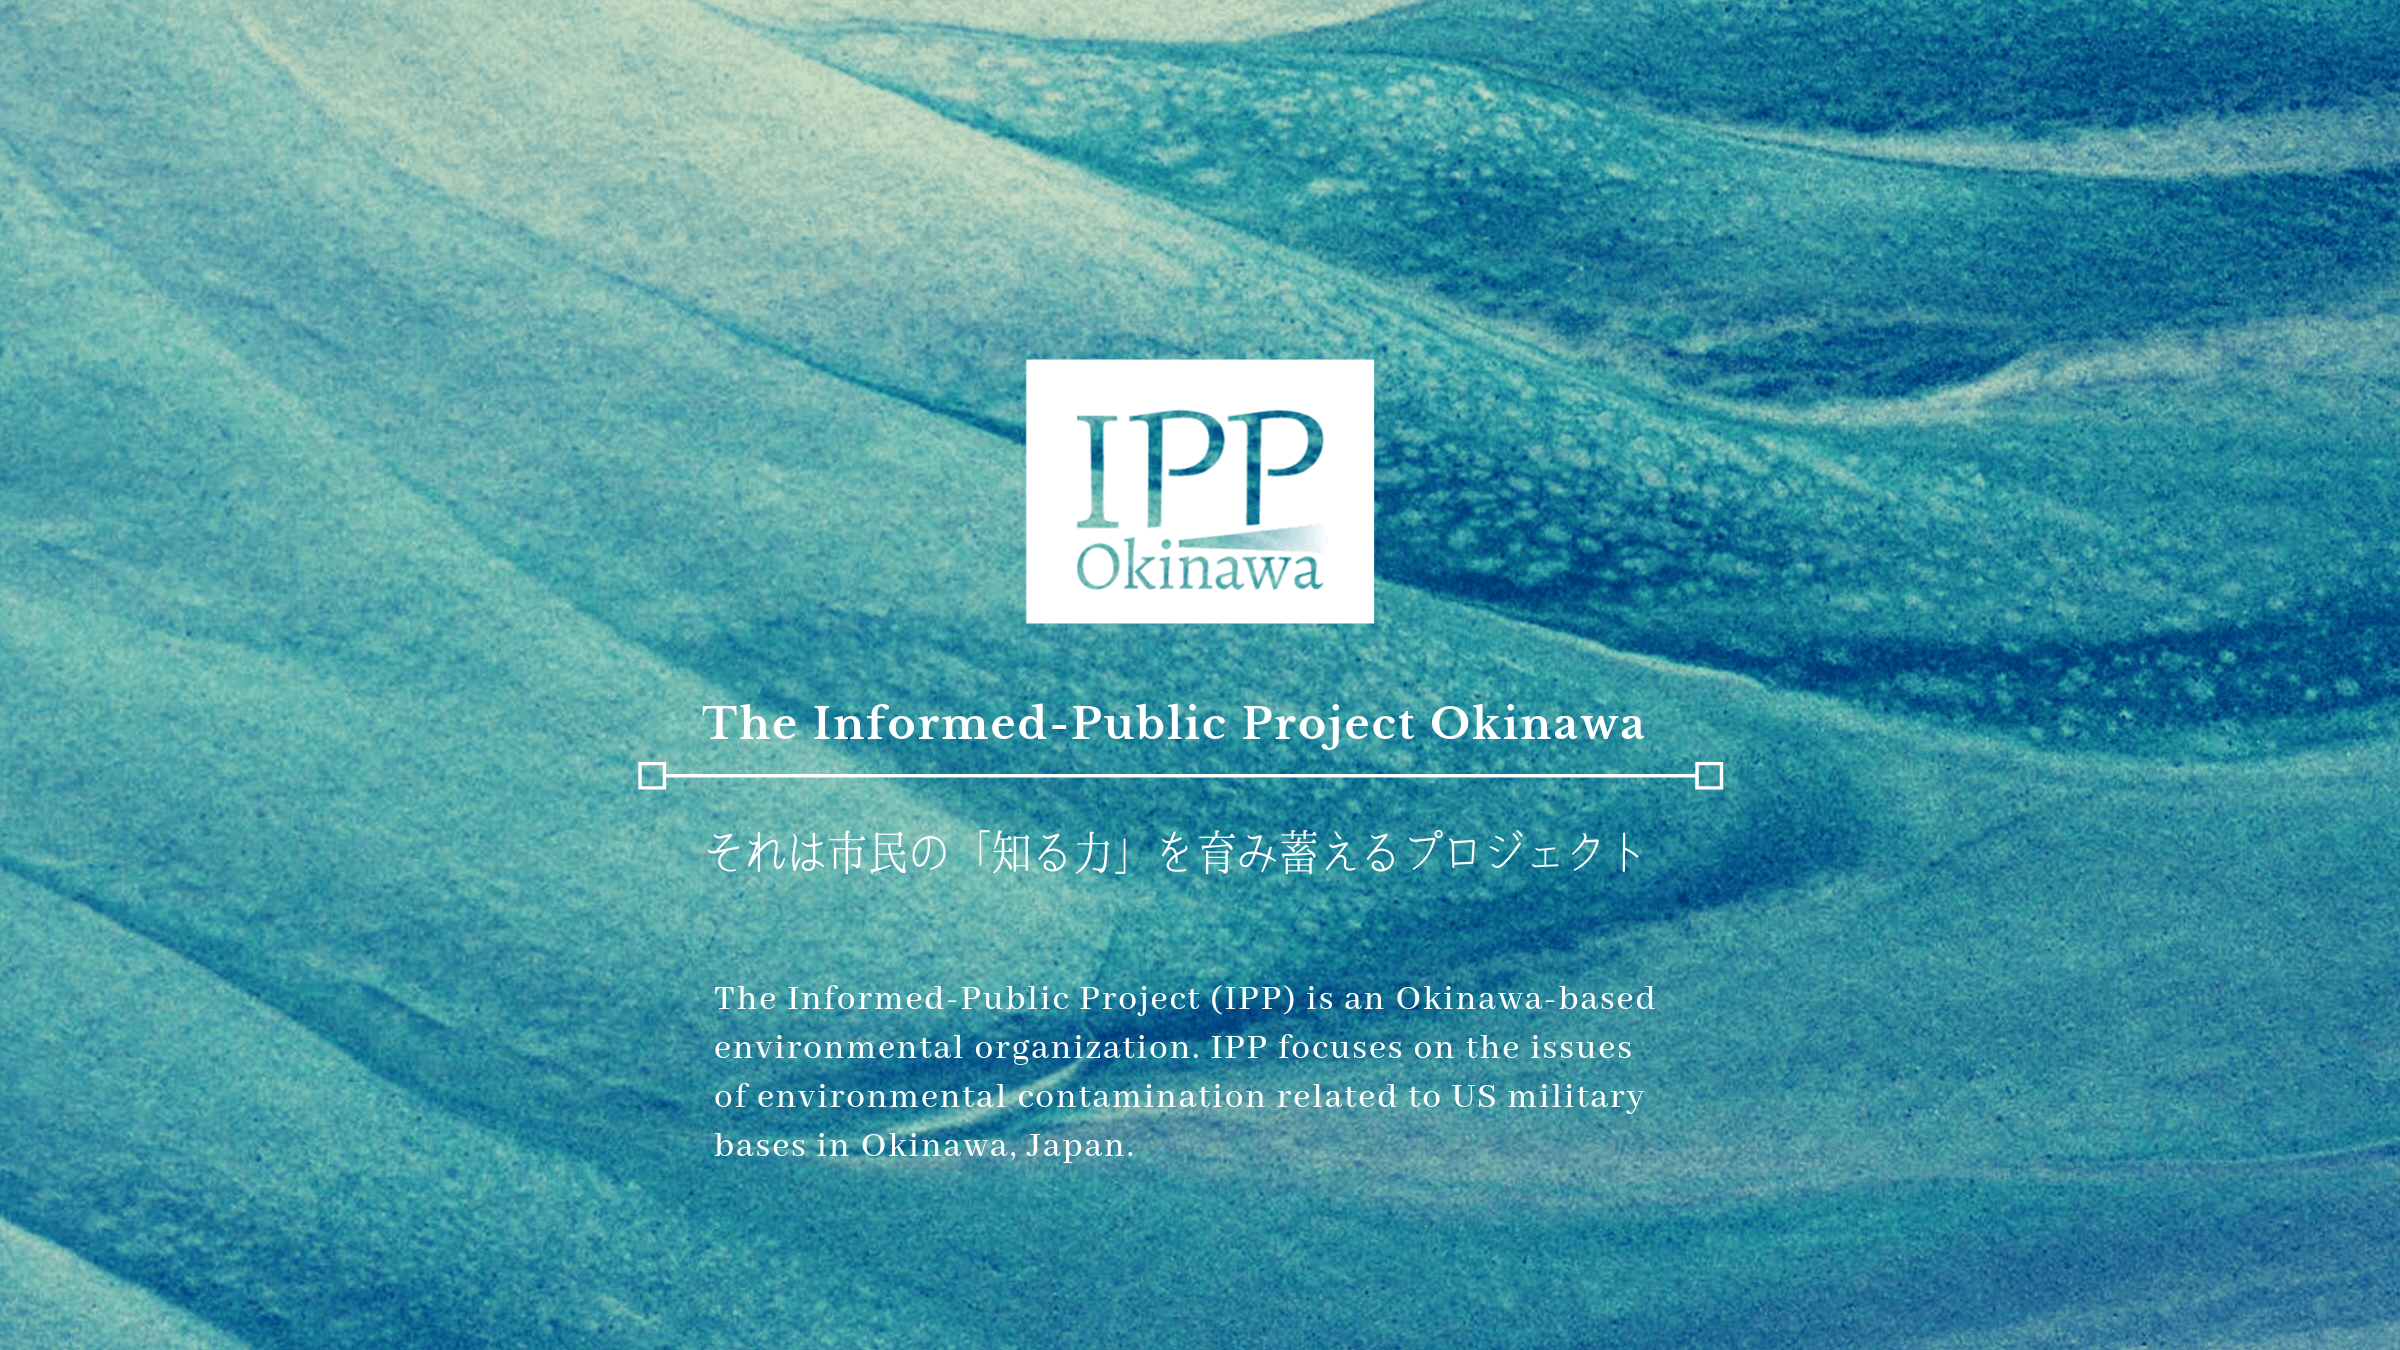 The Informed-Public Project (IPP) is an Okinawa-based environmental organization. IPP focuses on the issues of environmental contamination related to US military bases in Okinawa, Japan